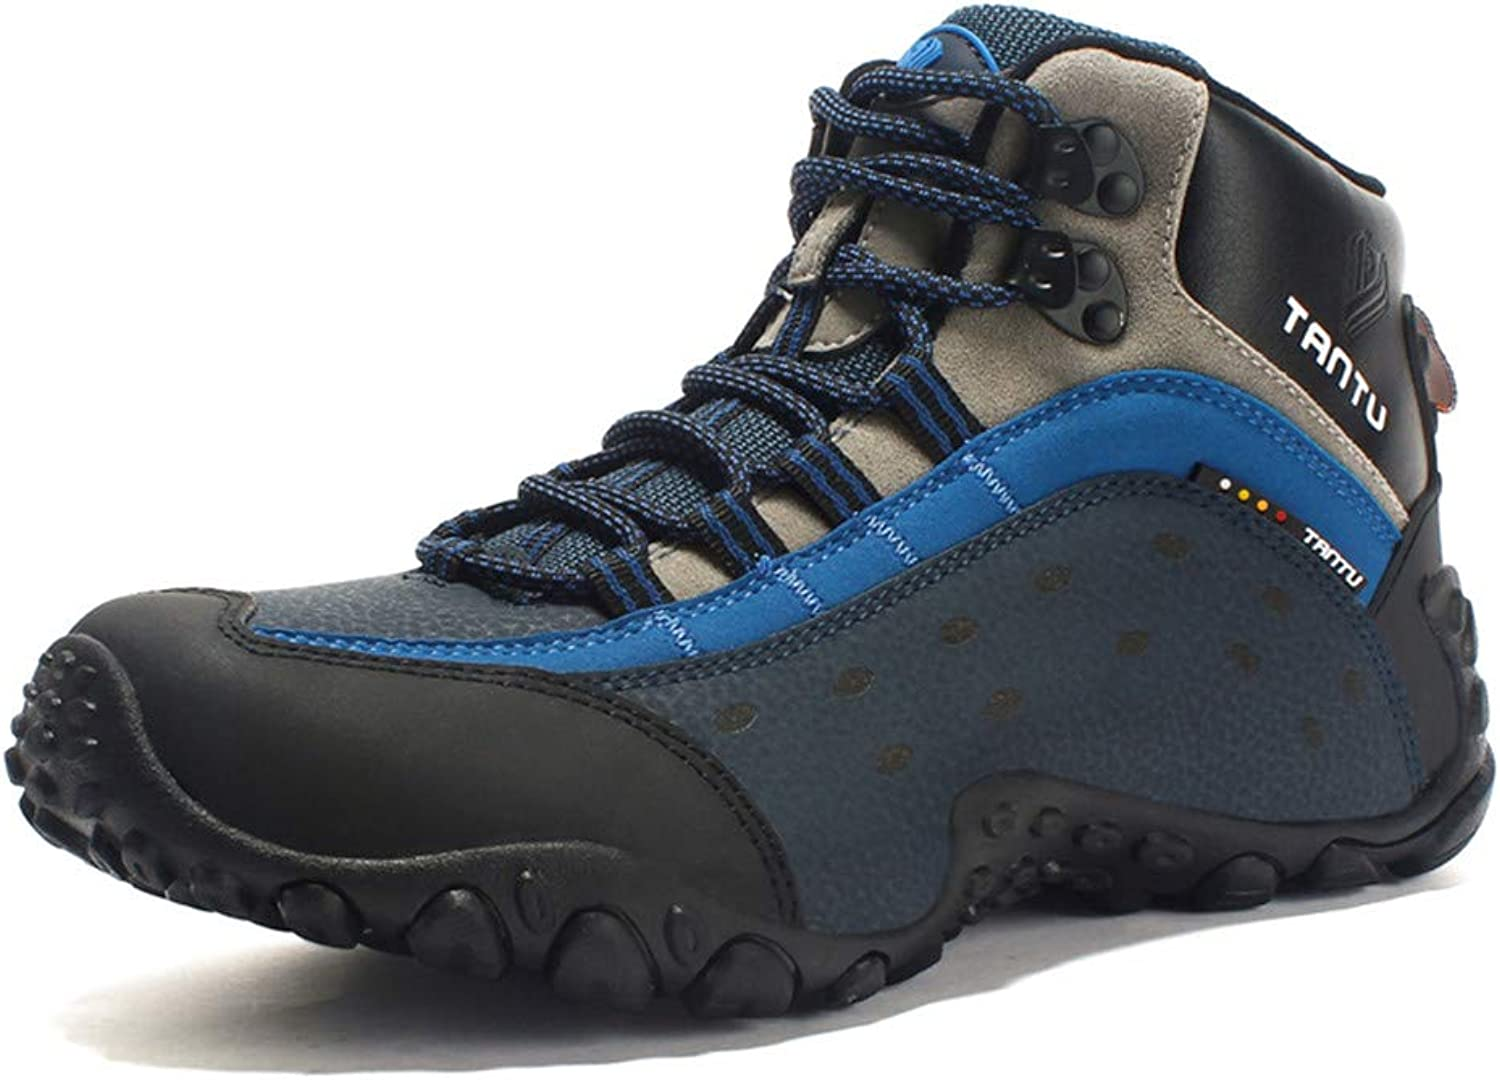 Men's Mountaineering shoes Outdoor Leisure shoes Antiskid Walking Sports shoes,bluee,40